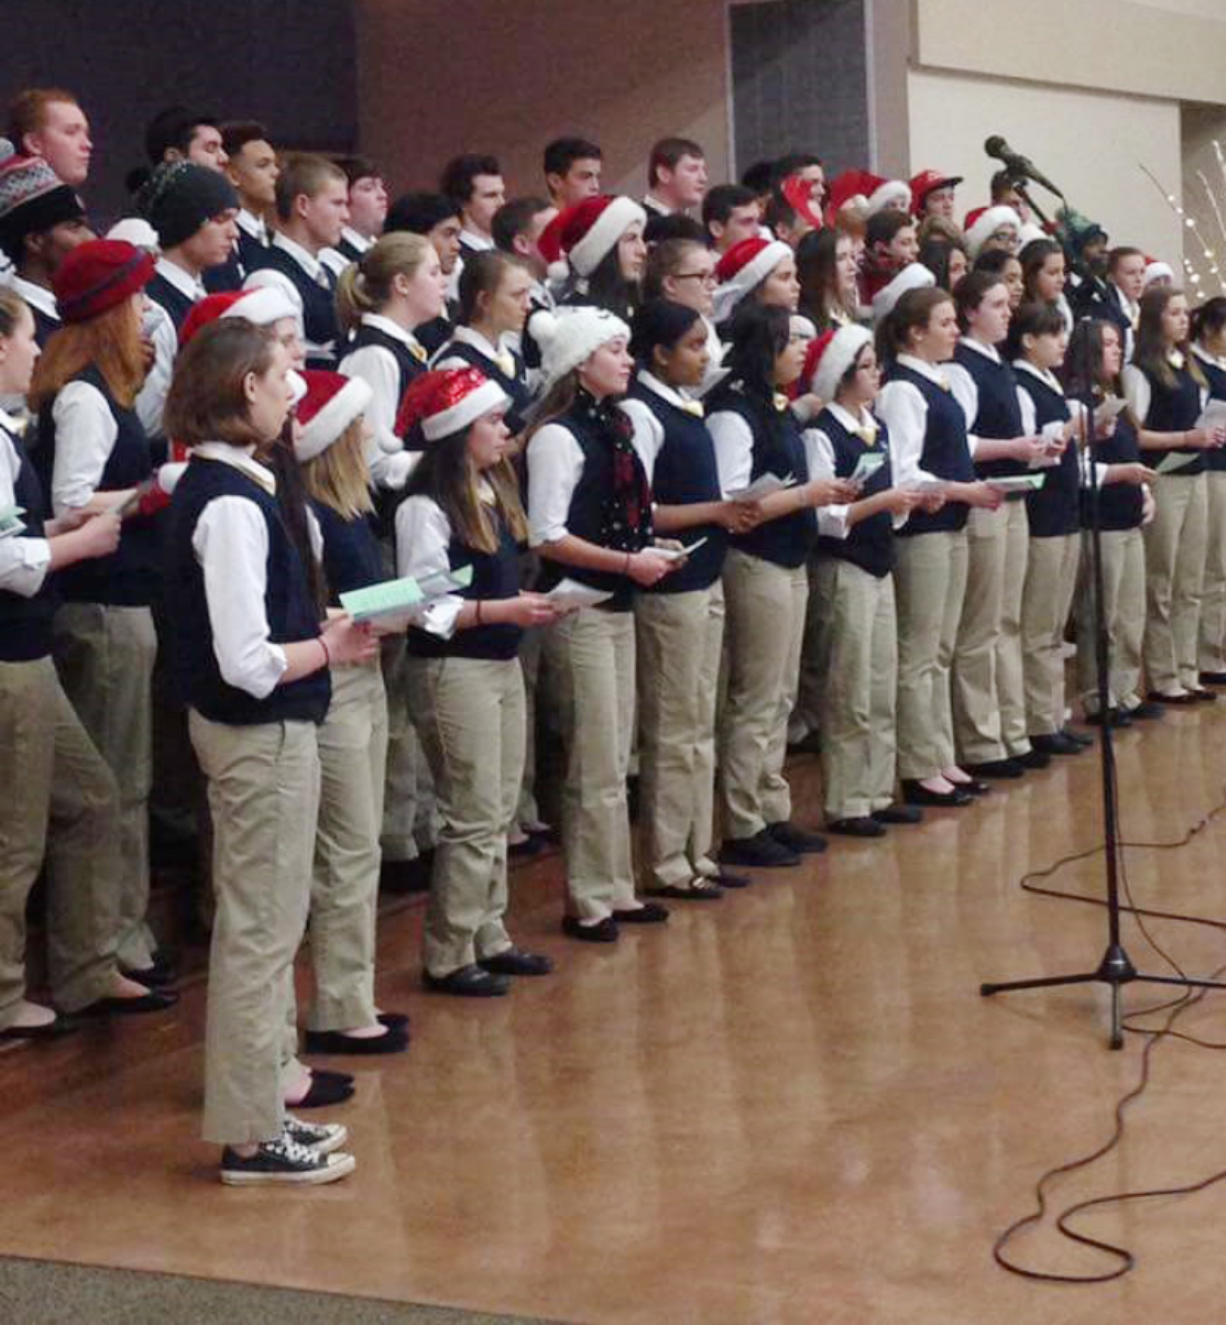 Evergreen Highlands: Guests of the St. Joseph Catholic Church Golden Fellowship Senior Lunch were treated to a performance by the Seton Catholic College Prep Choir and lunch served by St.